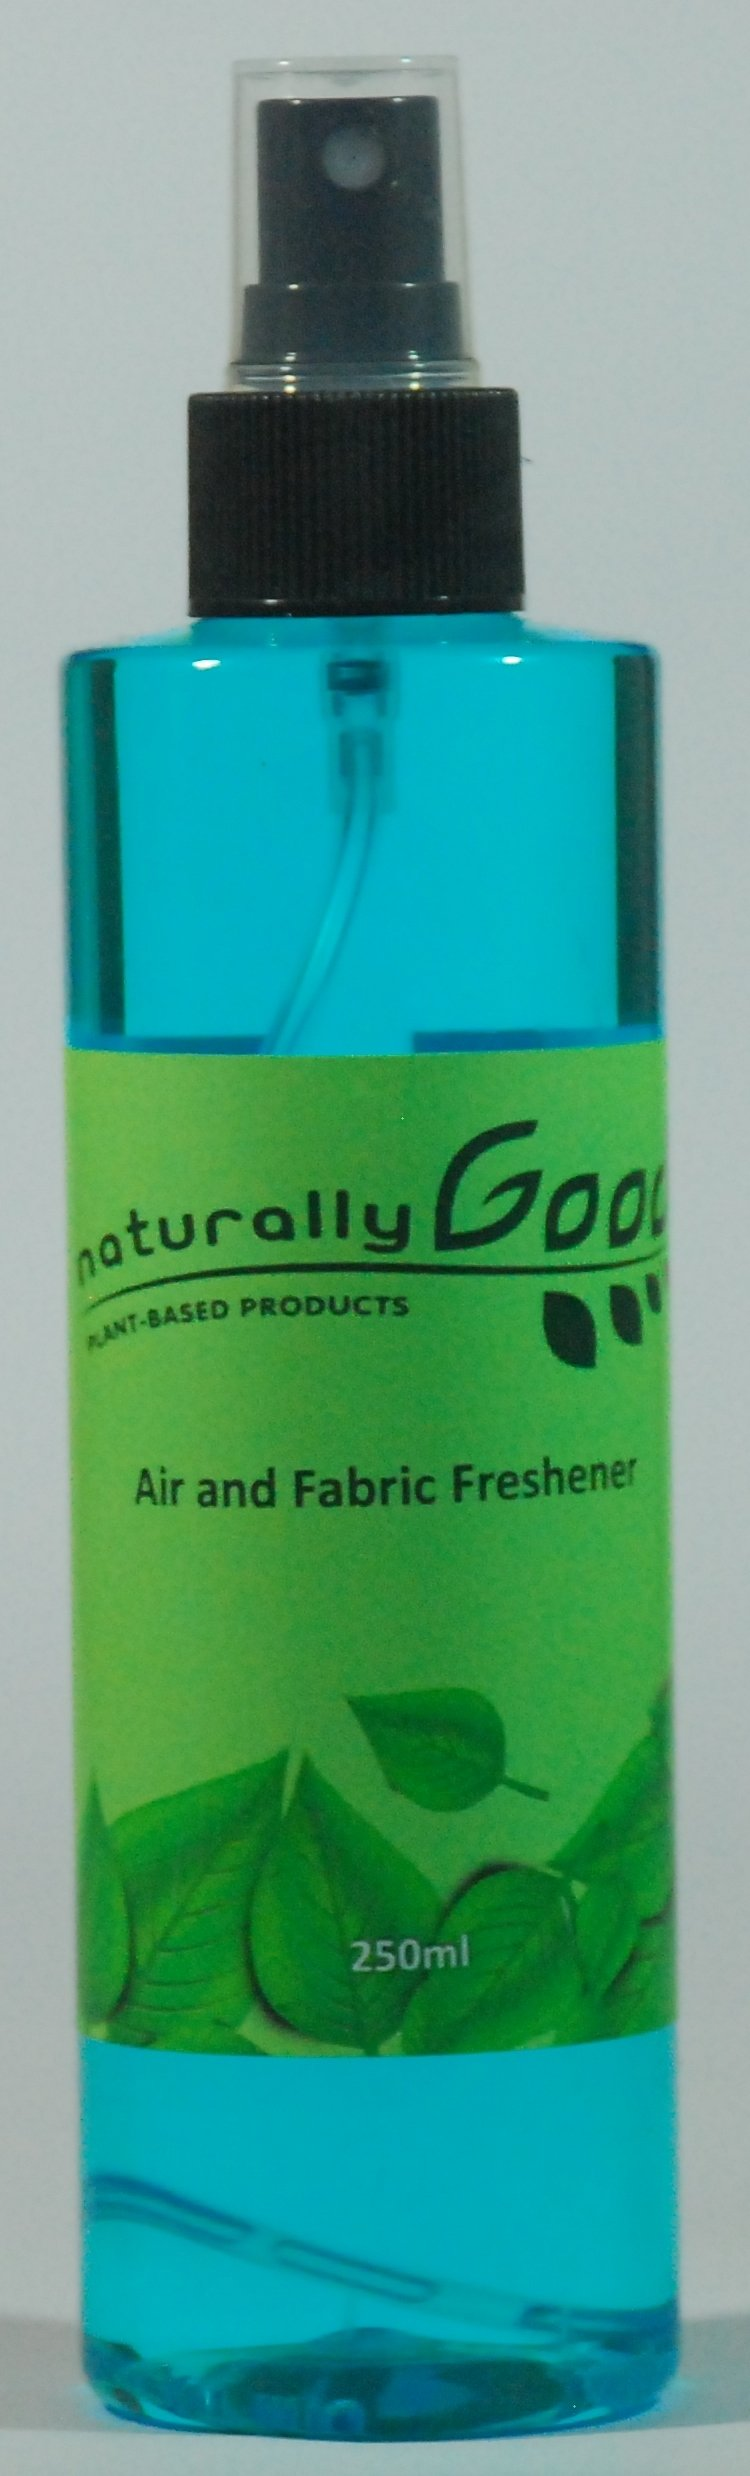 Eco Air Freshener 250ml EAF250